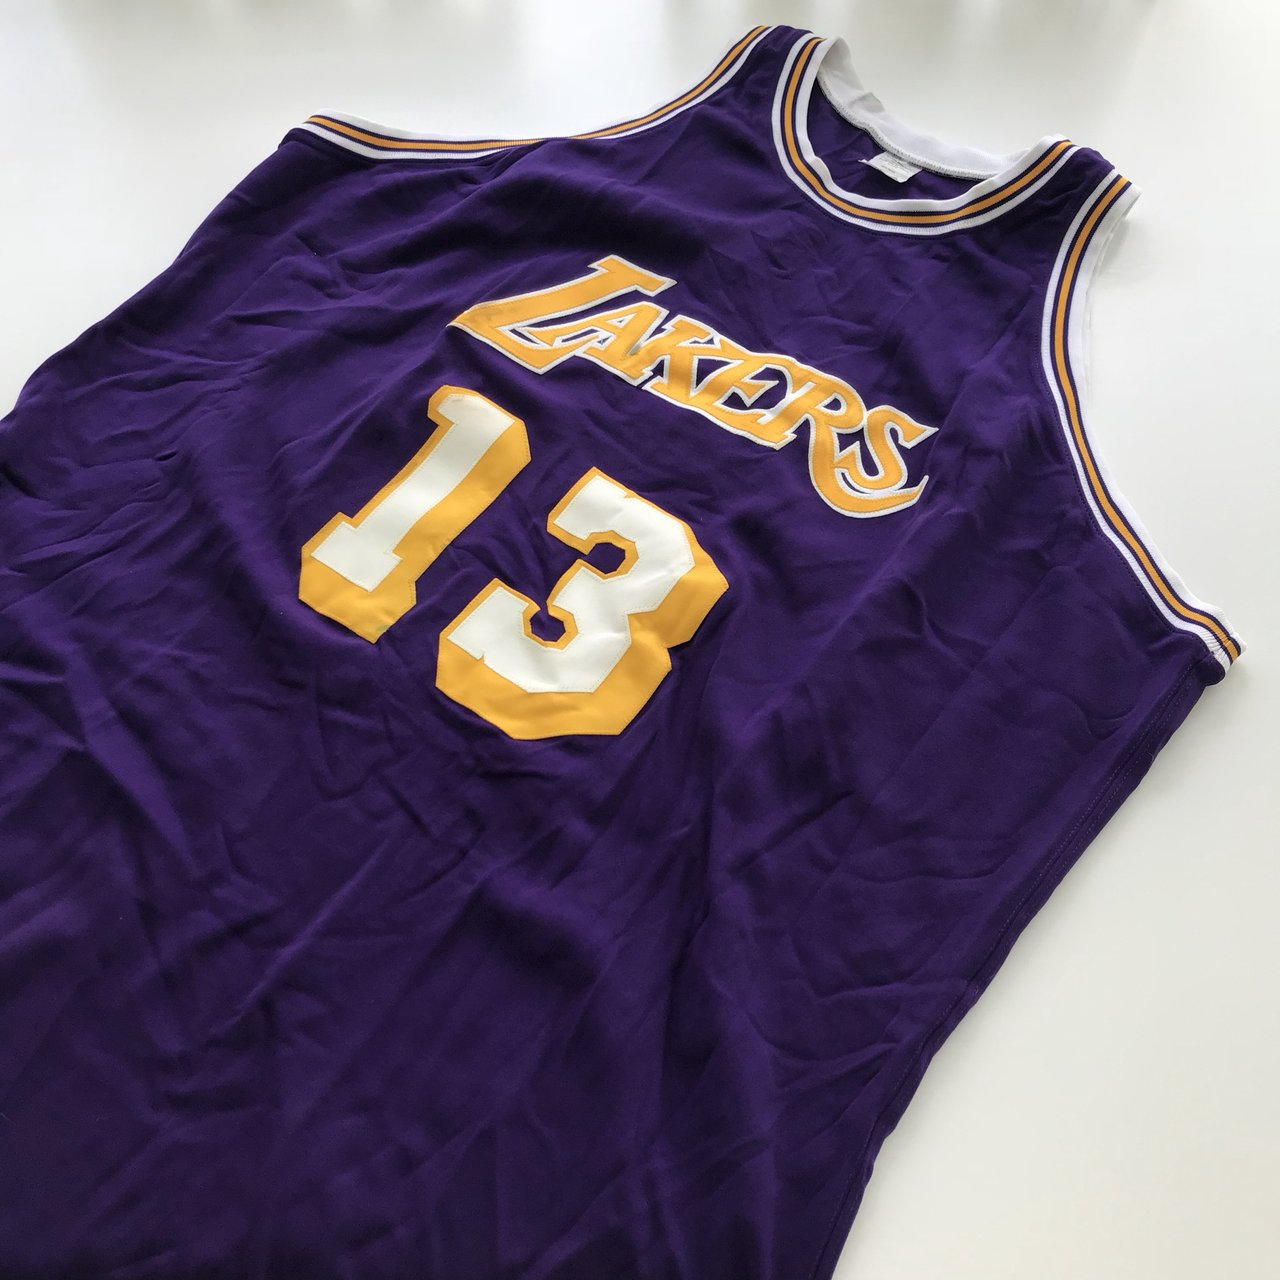 Mitchell and Ness Los Angeles Lakers Wilt Chamberlain Jersey - Depop f8c4aa756